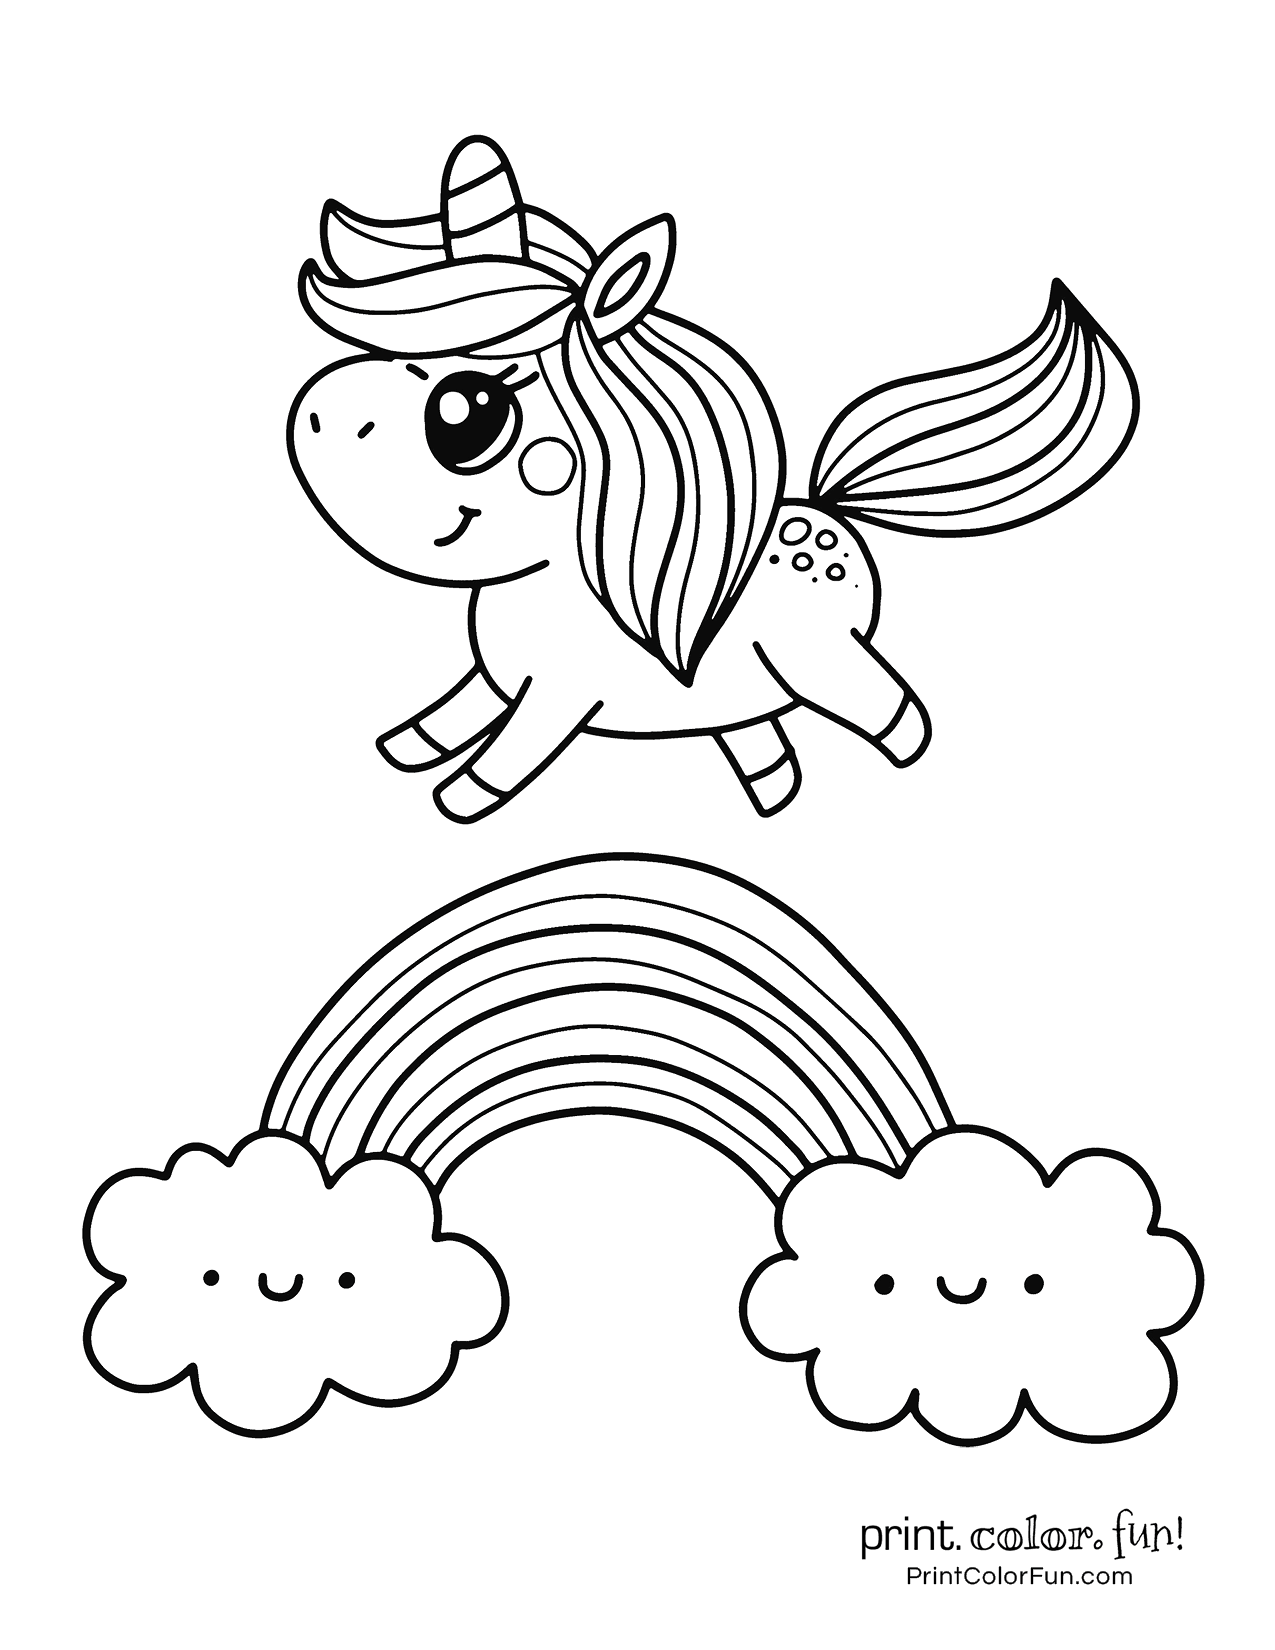 Rainbow Unicorn Coloring Sheet Google Search Unicorn Coloring Pages Birthday Coloring Pages Bear Coloring Pages